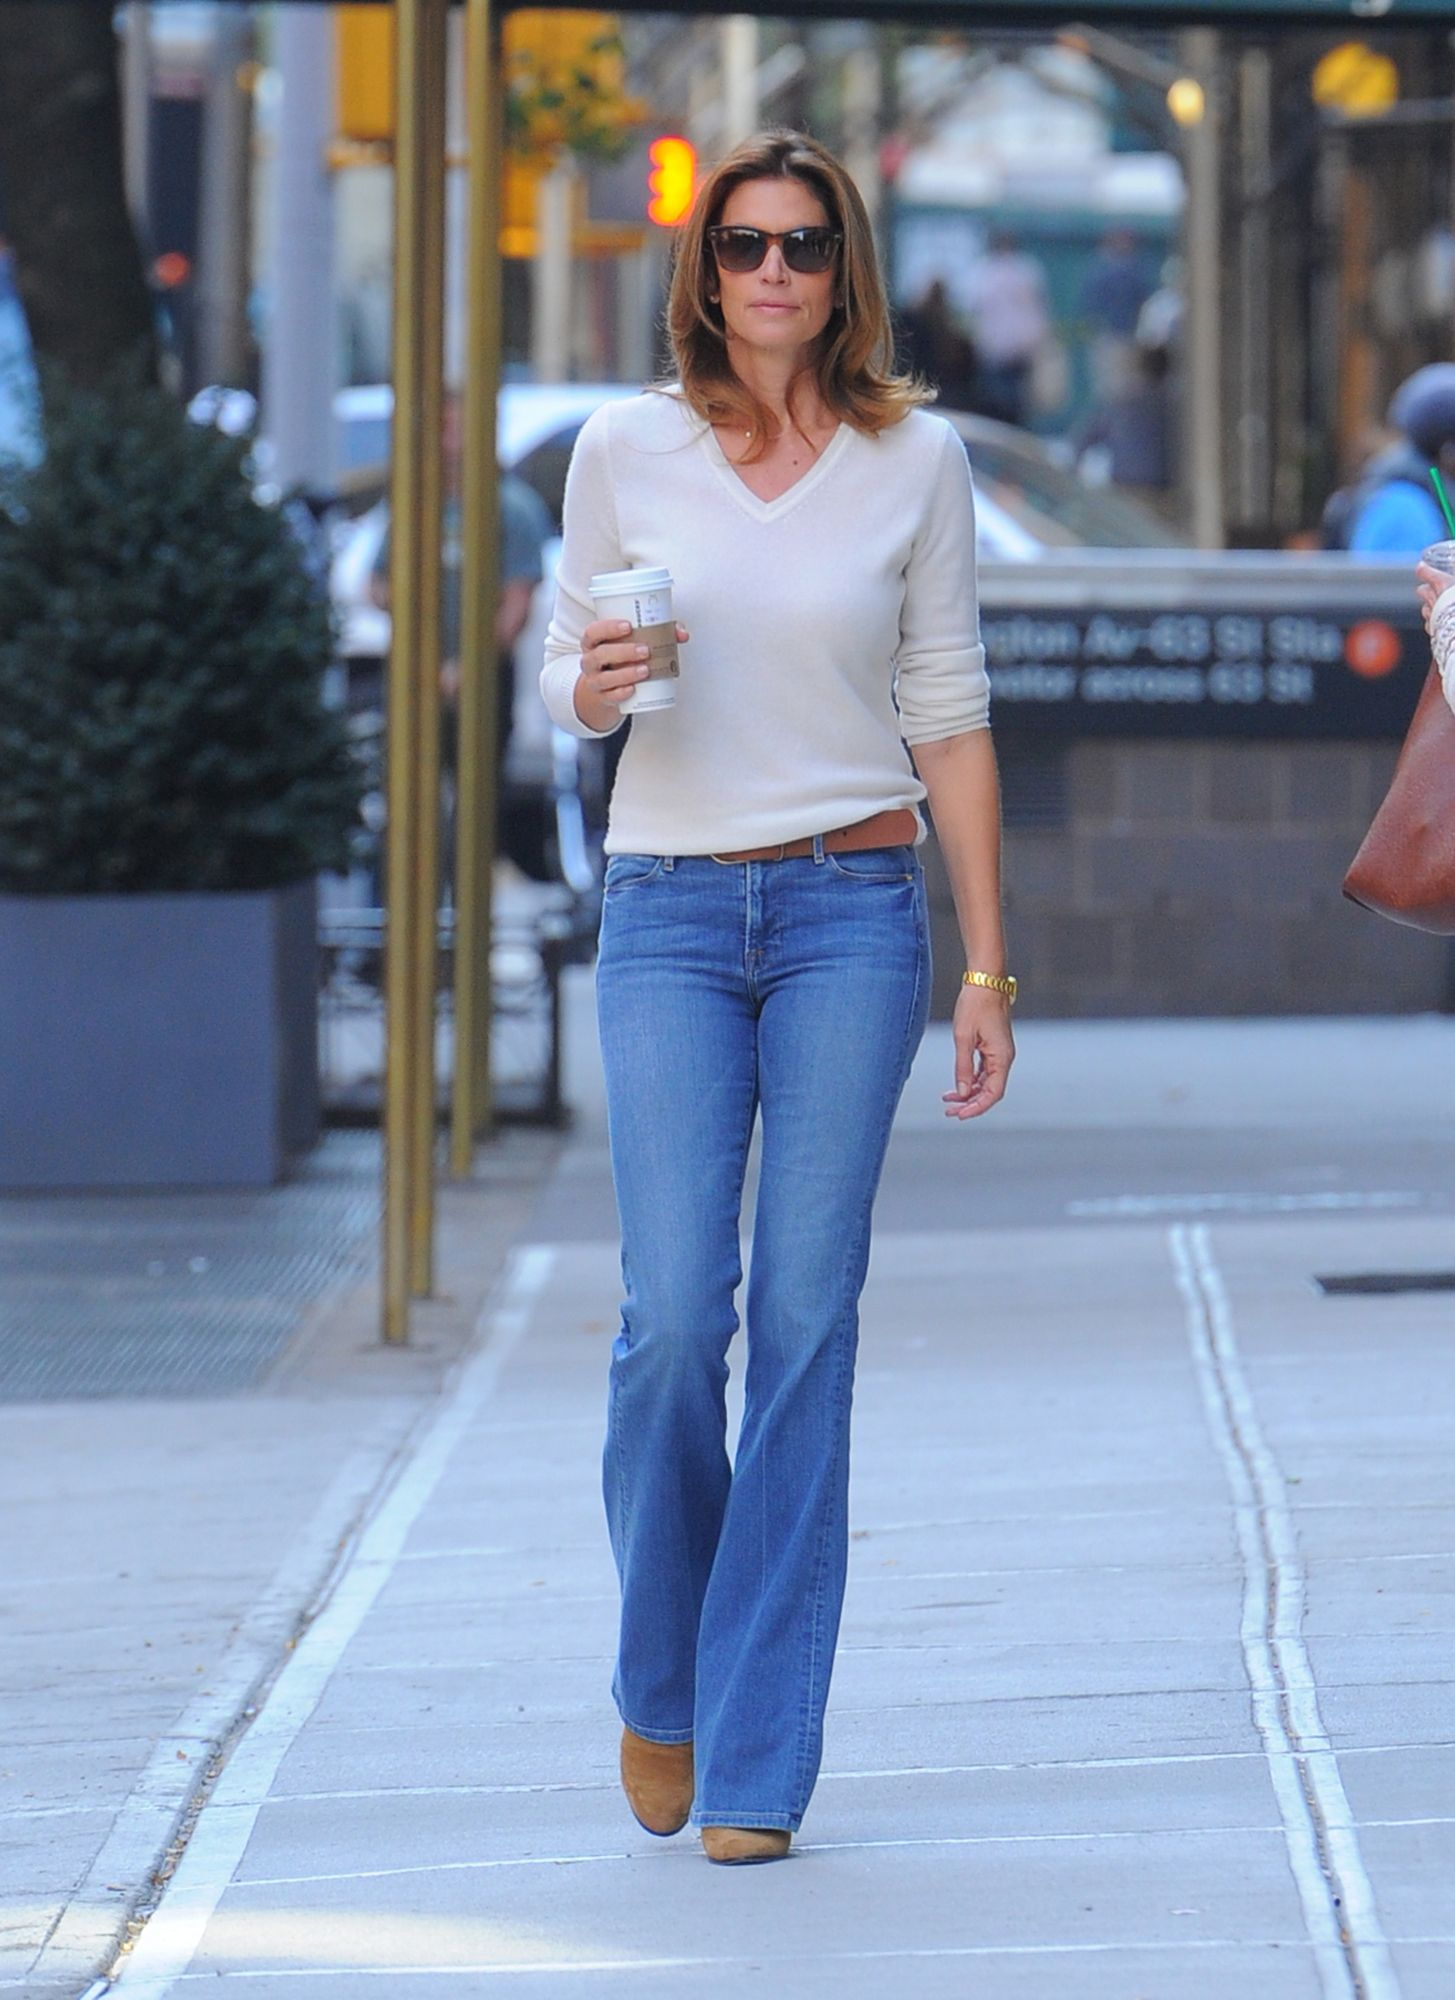 Cindy Crawford Sizzles in the '90s Revival Look of the Boot-Cut ...